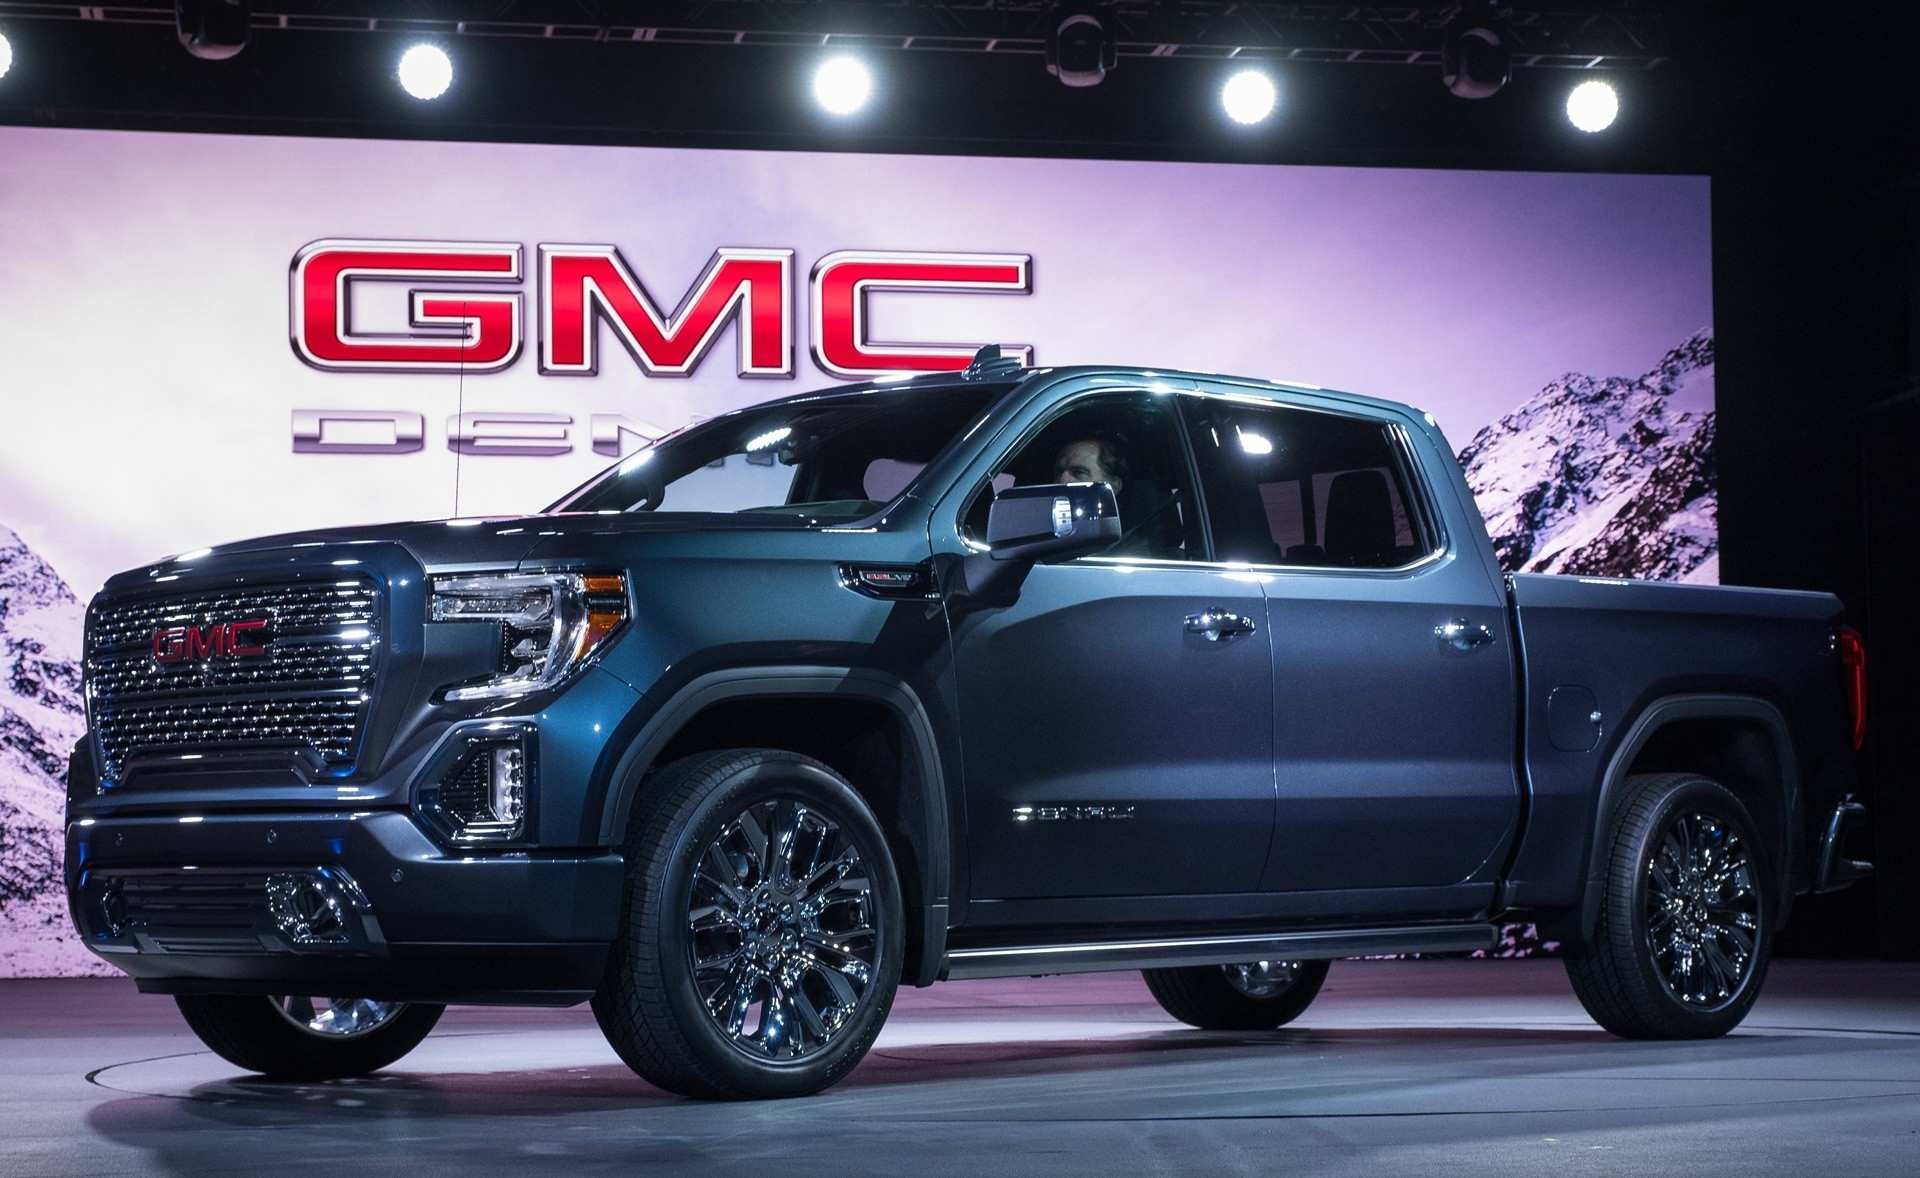 42 All New The Gmc 2019 Video Review And Price Release for The Gmc 2019 Video Review And Price